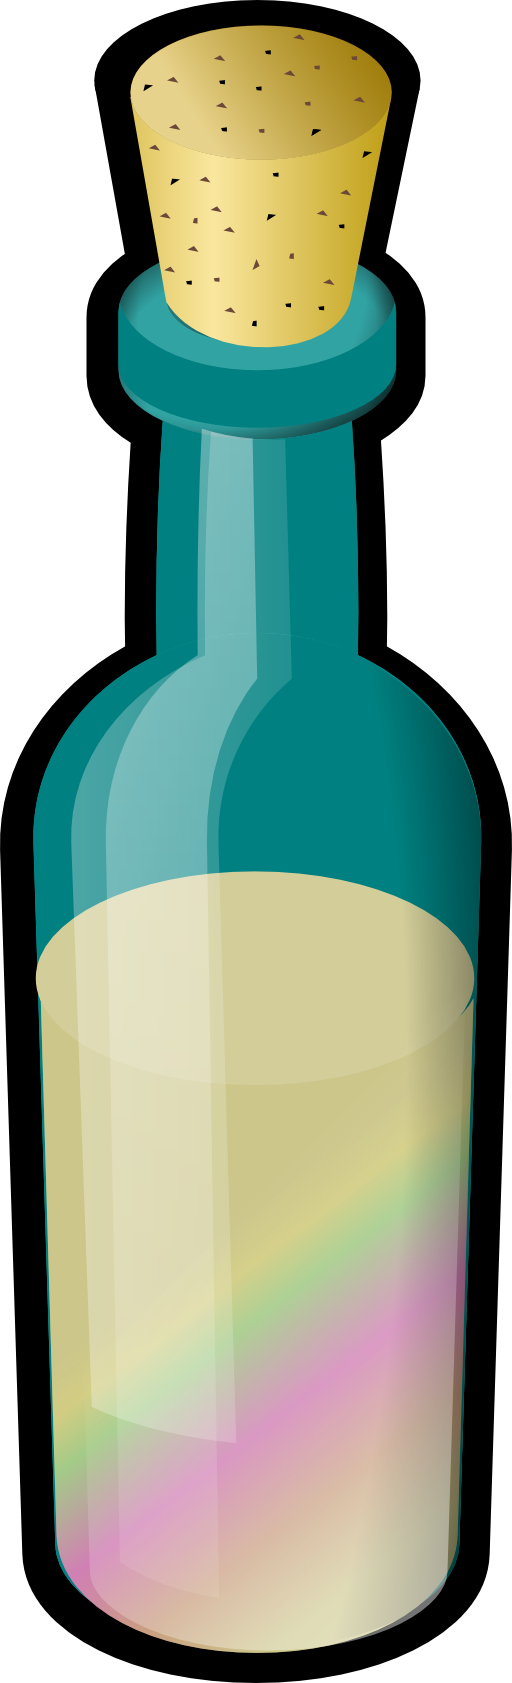 Grains clipart sand. Bottle of colored with